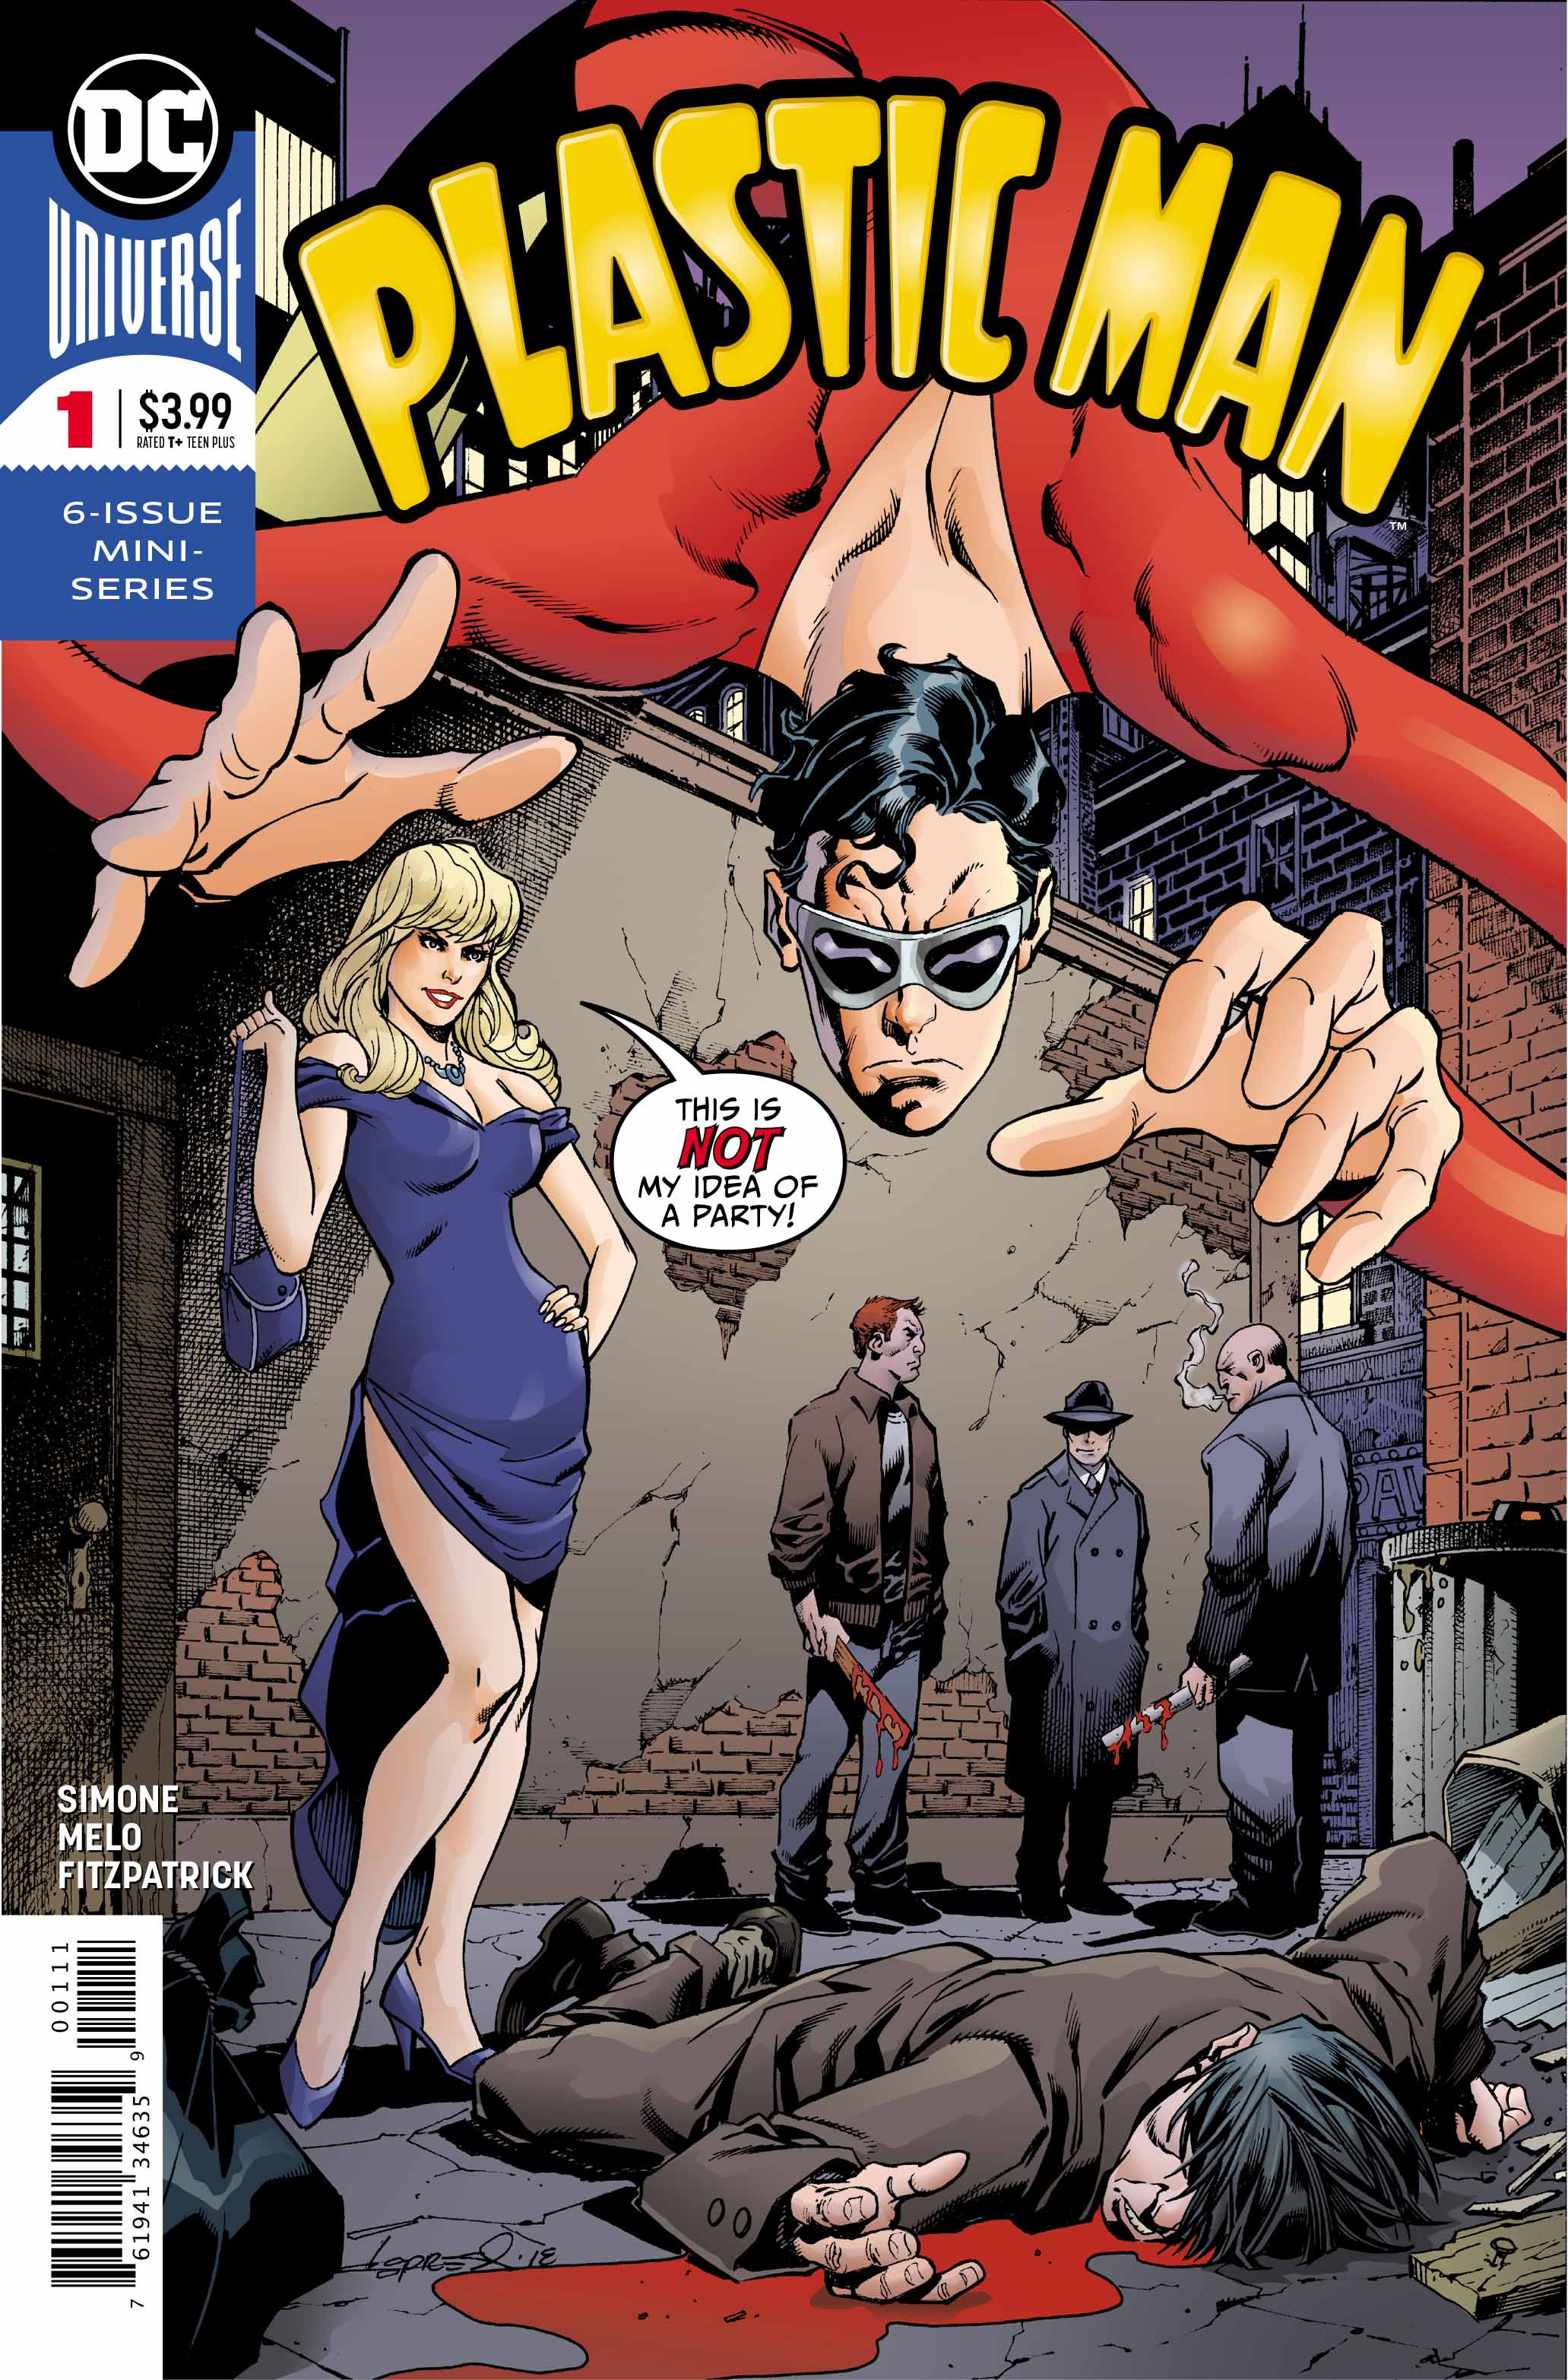 WEEK IN REVIEW: Eternity Girl #4, Plastic Man #1